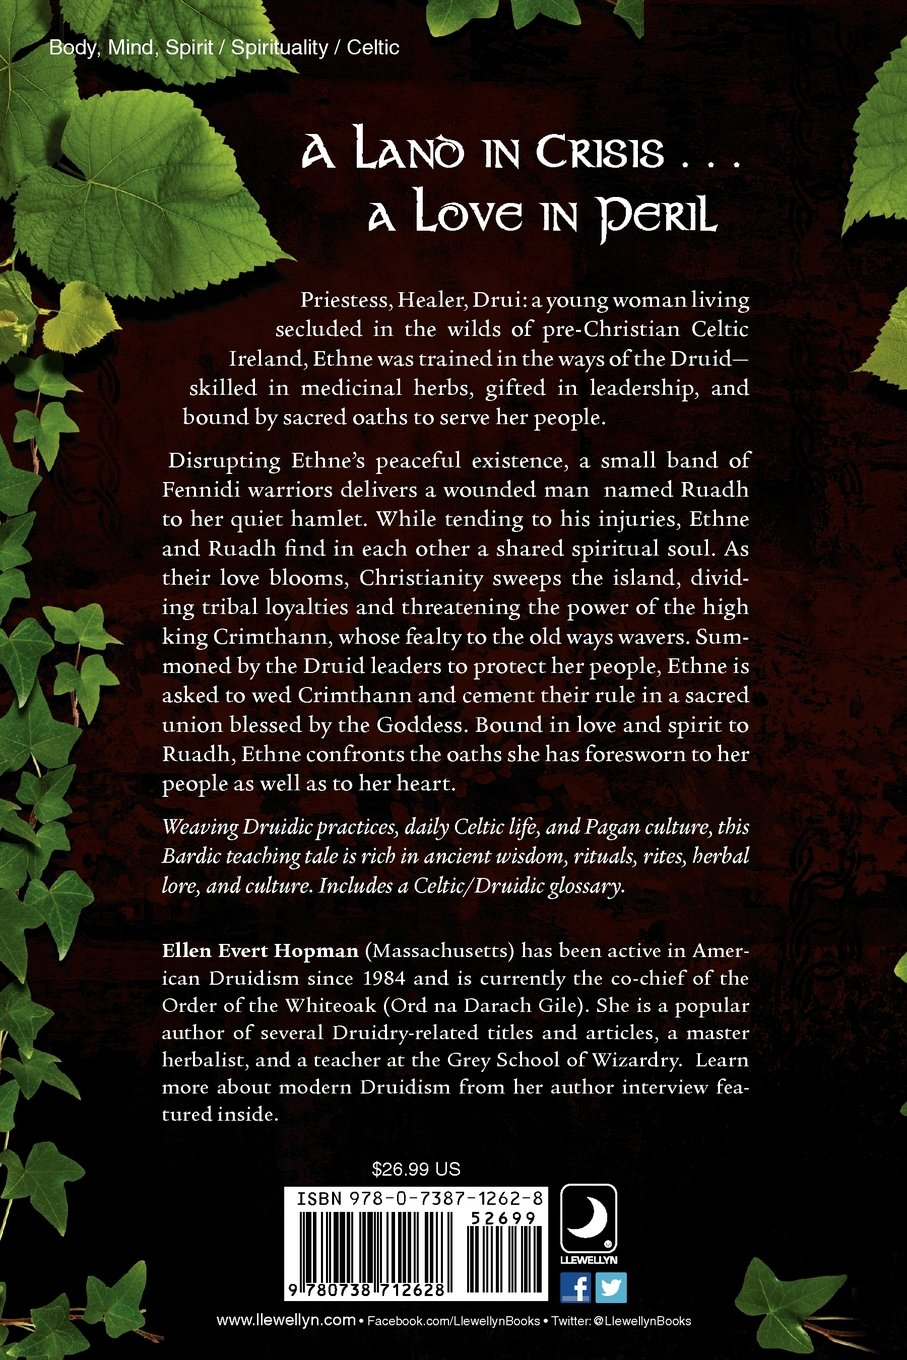 Priestess of the forest a druid journey ellen evert hopman priestess of the forest a druid journey ellen evert hopman 9780738712628 amazon books nvjuhfo Choice Image